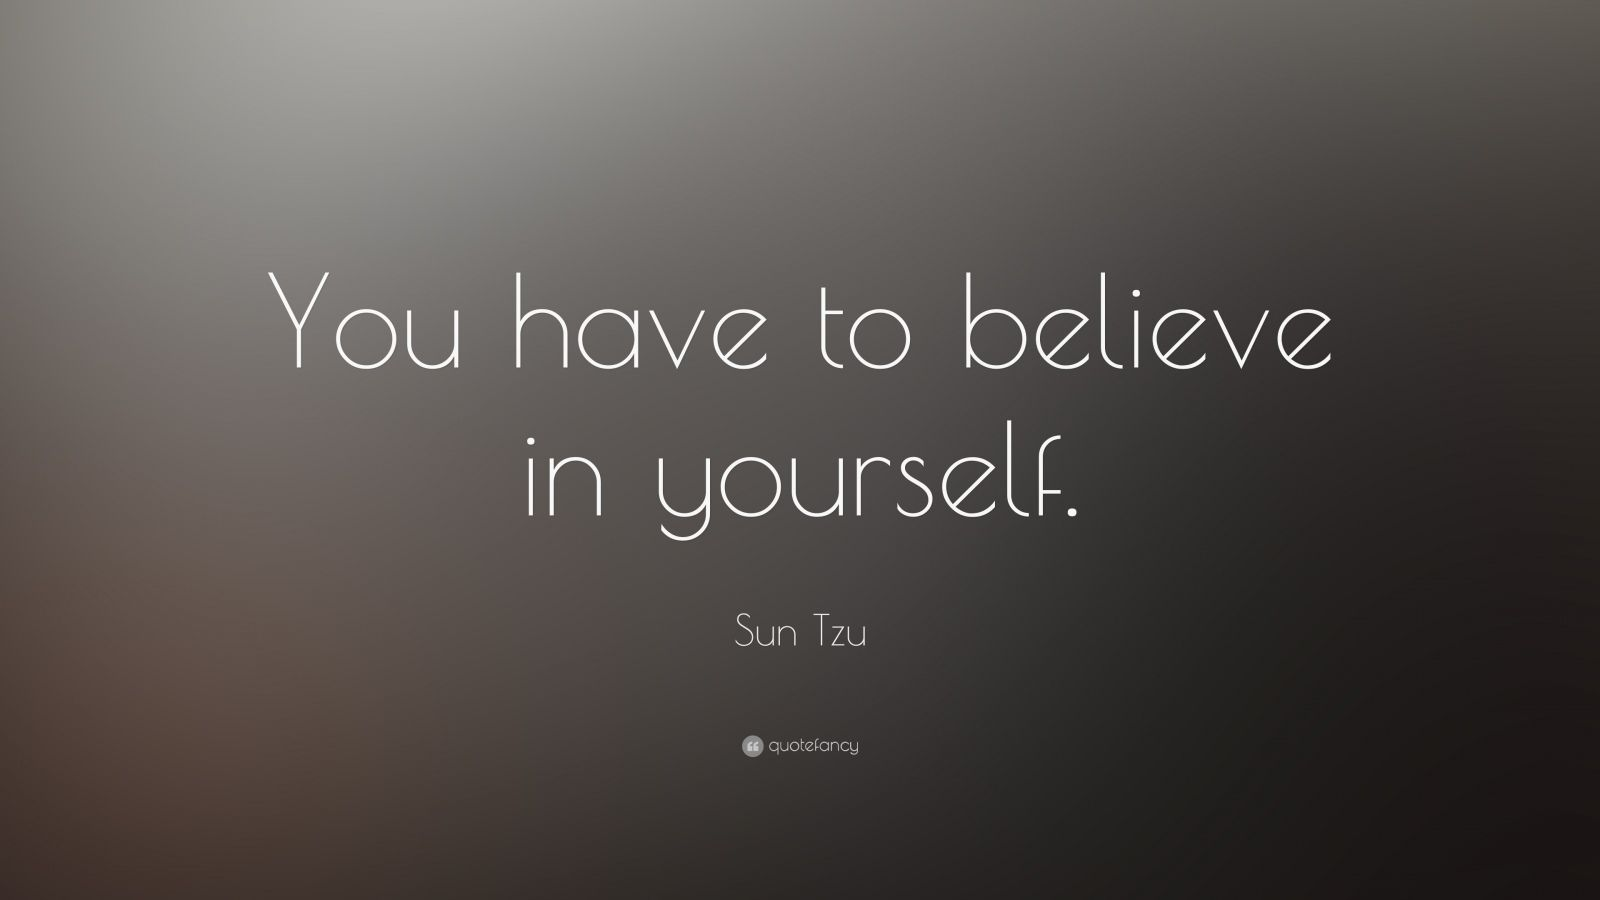 Theodore Roosevelt Quotes Wallpaper Sun Tzu Quote You Have To Believe In Yourself 23